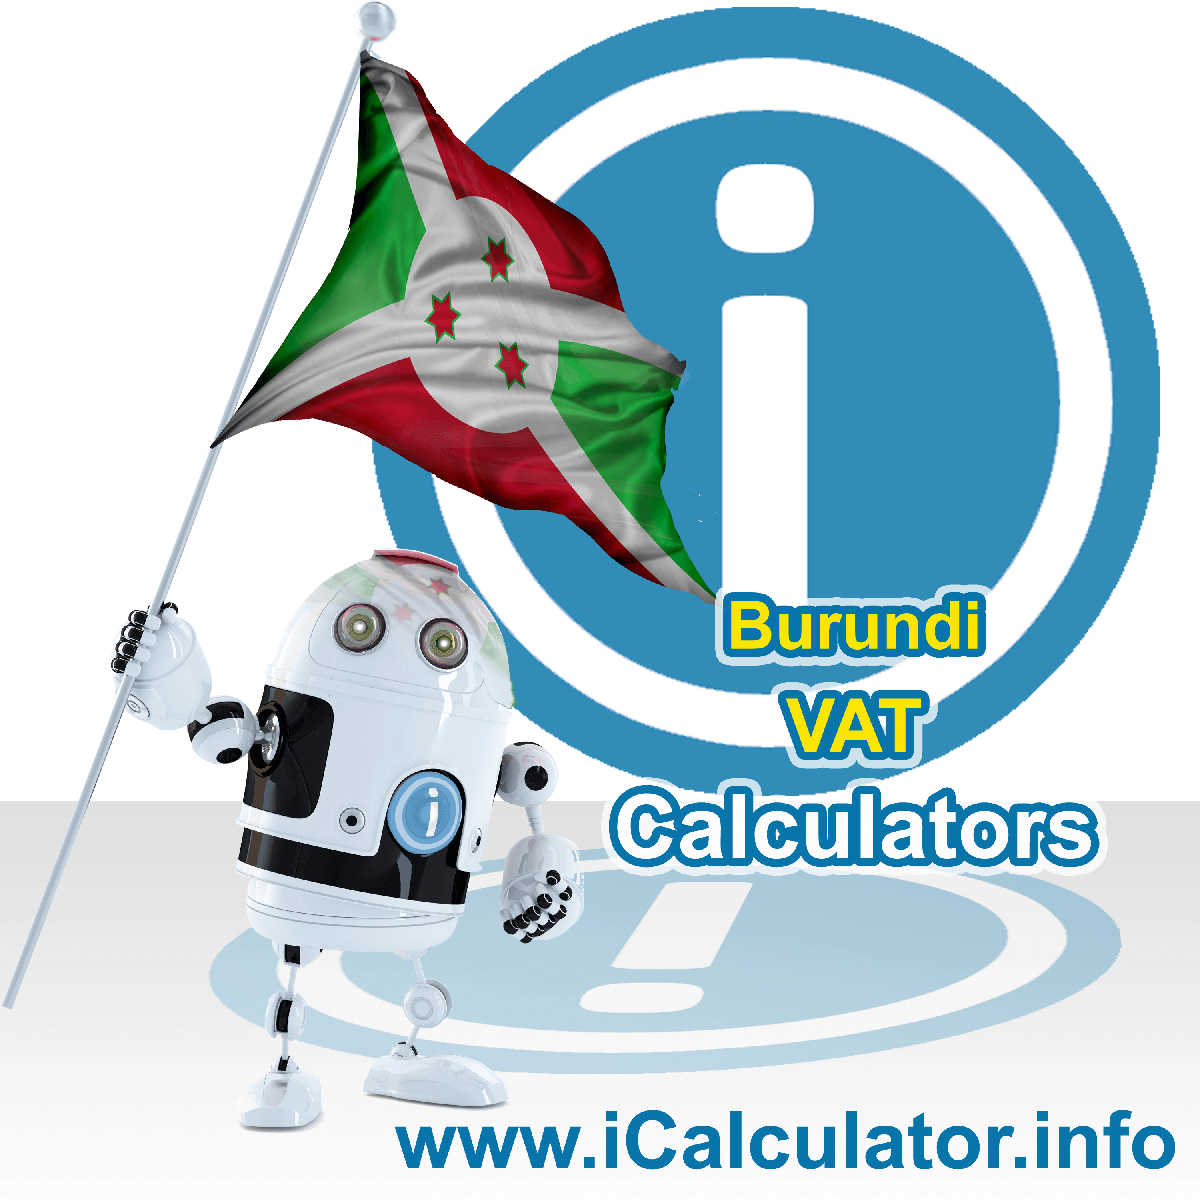 Burundi VAT Calculator. This image shows the Burundi flag and information relating to the VAT formula used for calculating Value Added Tax in Burundi using the Burundi VAT Calculator in 2021